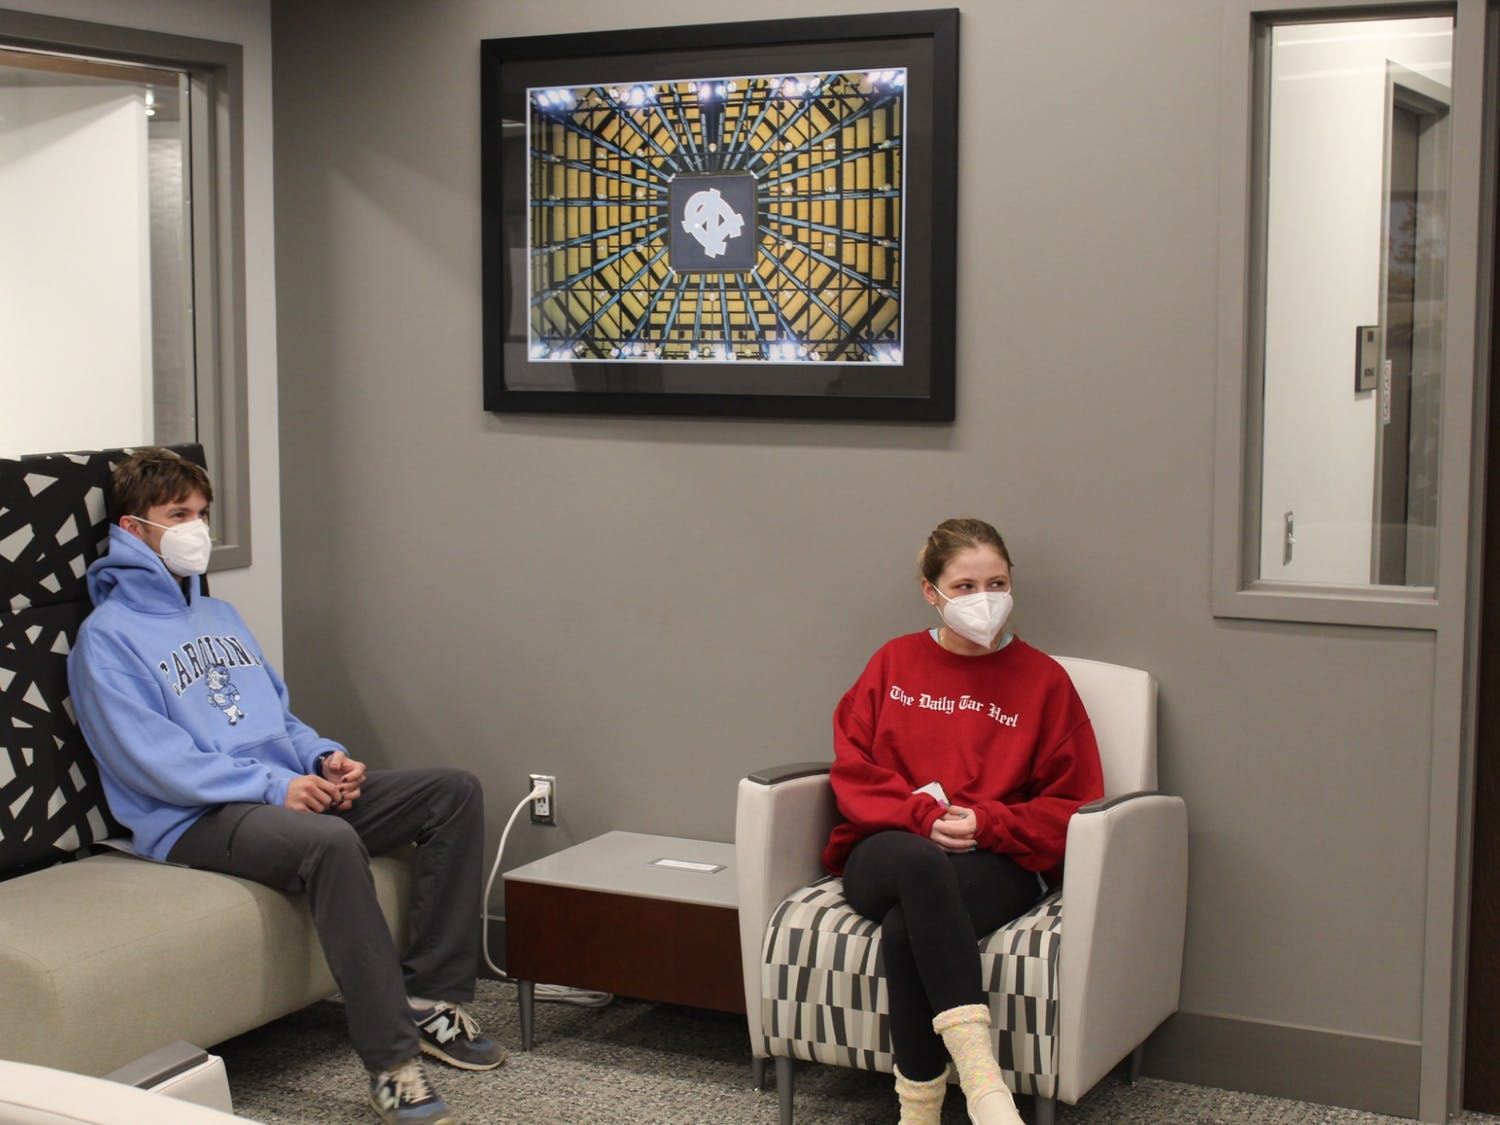 Tanner Clary and Audrey Frye sit in a waiting room at the Campus Health building on April 24, 2021.